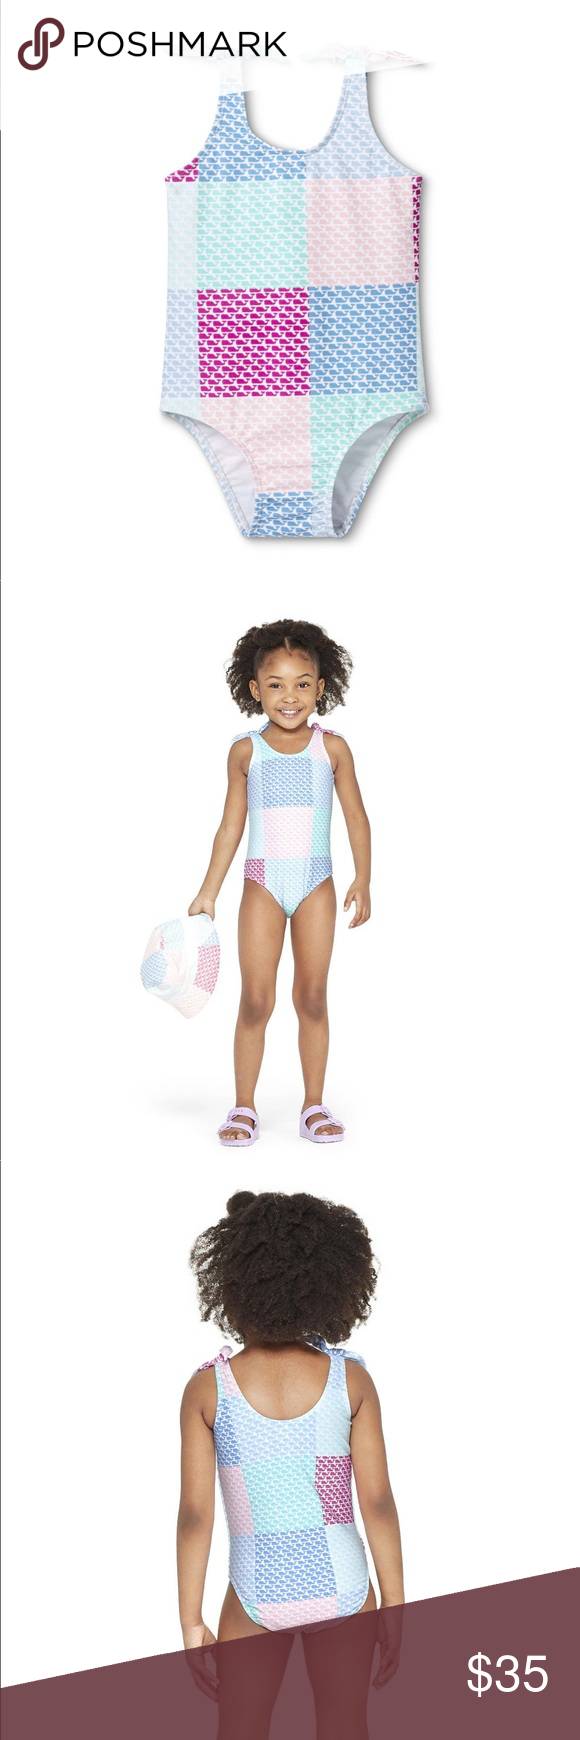 ca9585d1abfc6 🆕NWT Vineyard Vines forTarget Patchwork Swimsuit Toddler Girls' Patchwork  Whale One Piece Swimsuit -